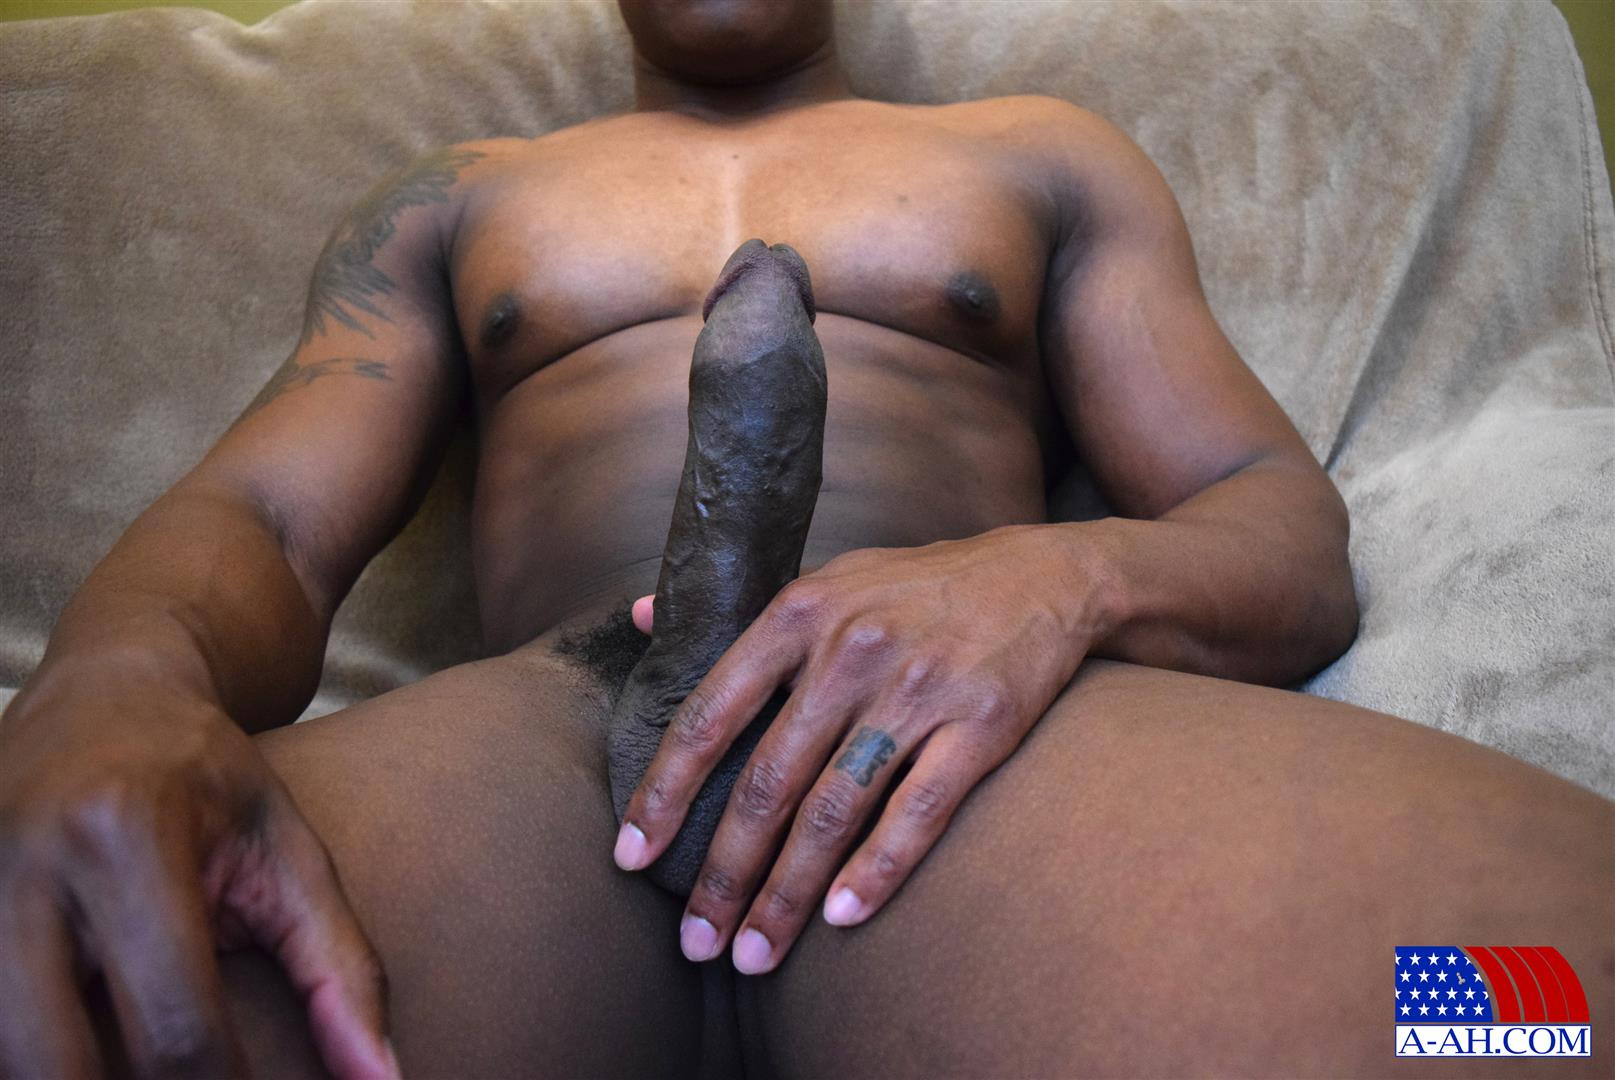 All American Heroes Sean Muscle Navy Petty Officer Jerking Big Black Cock Amateur Gay Porn 11